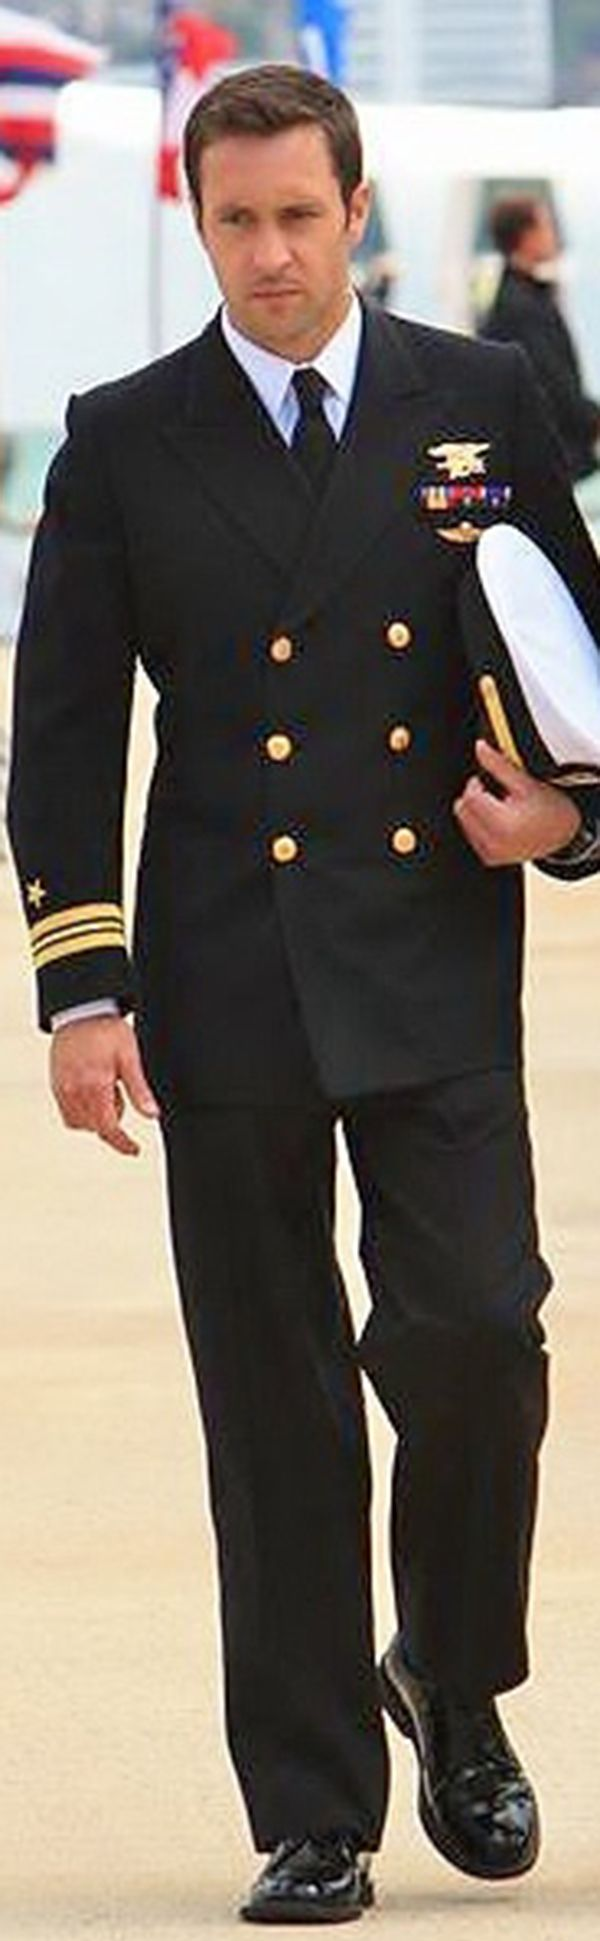 Alex O'Loughlin - I'm a sucker for a man in uniform!                                                                                                                                                                                 Mehr